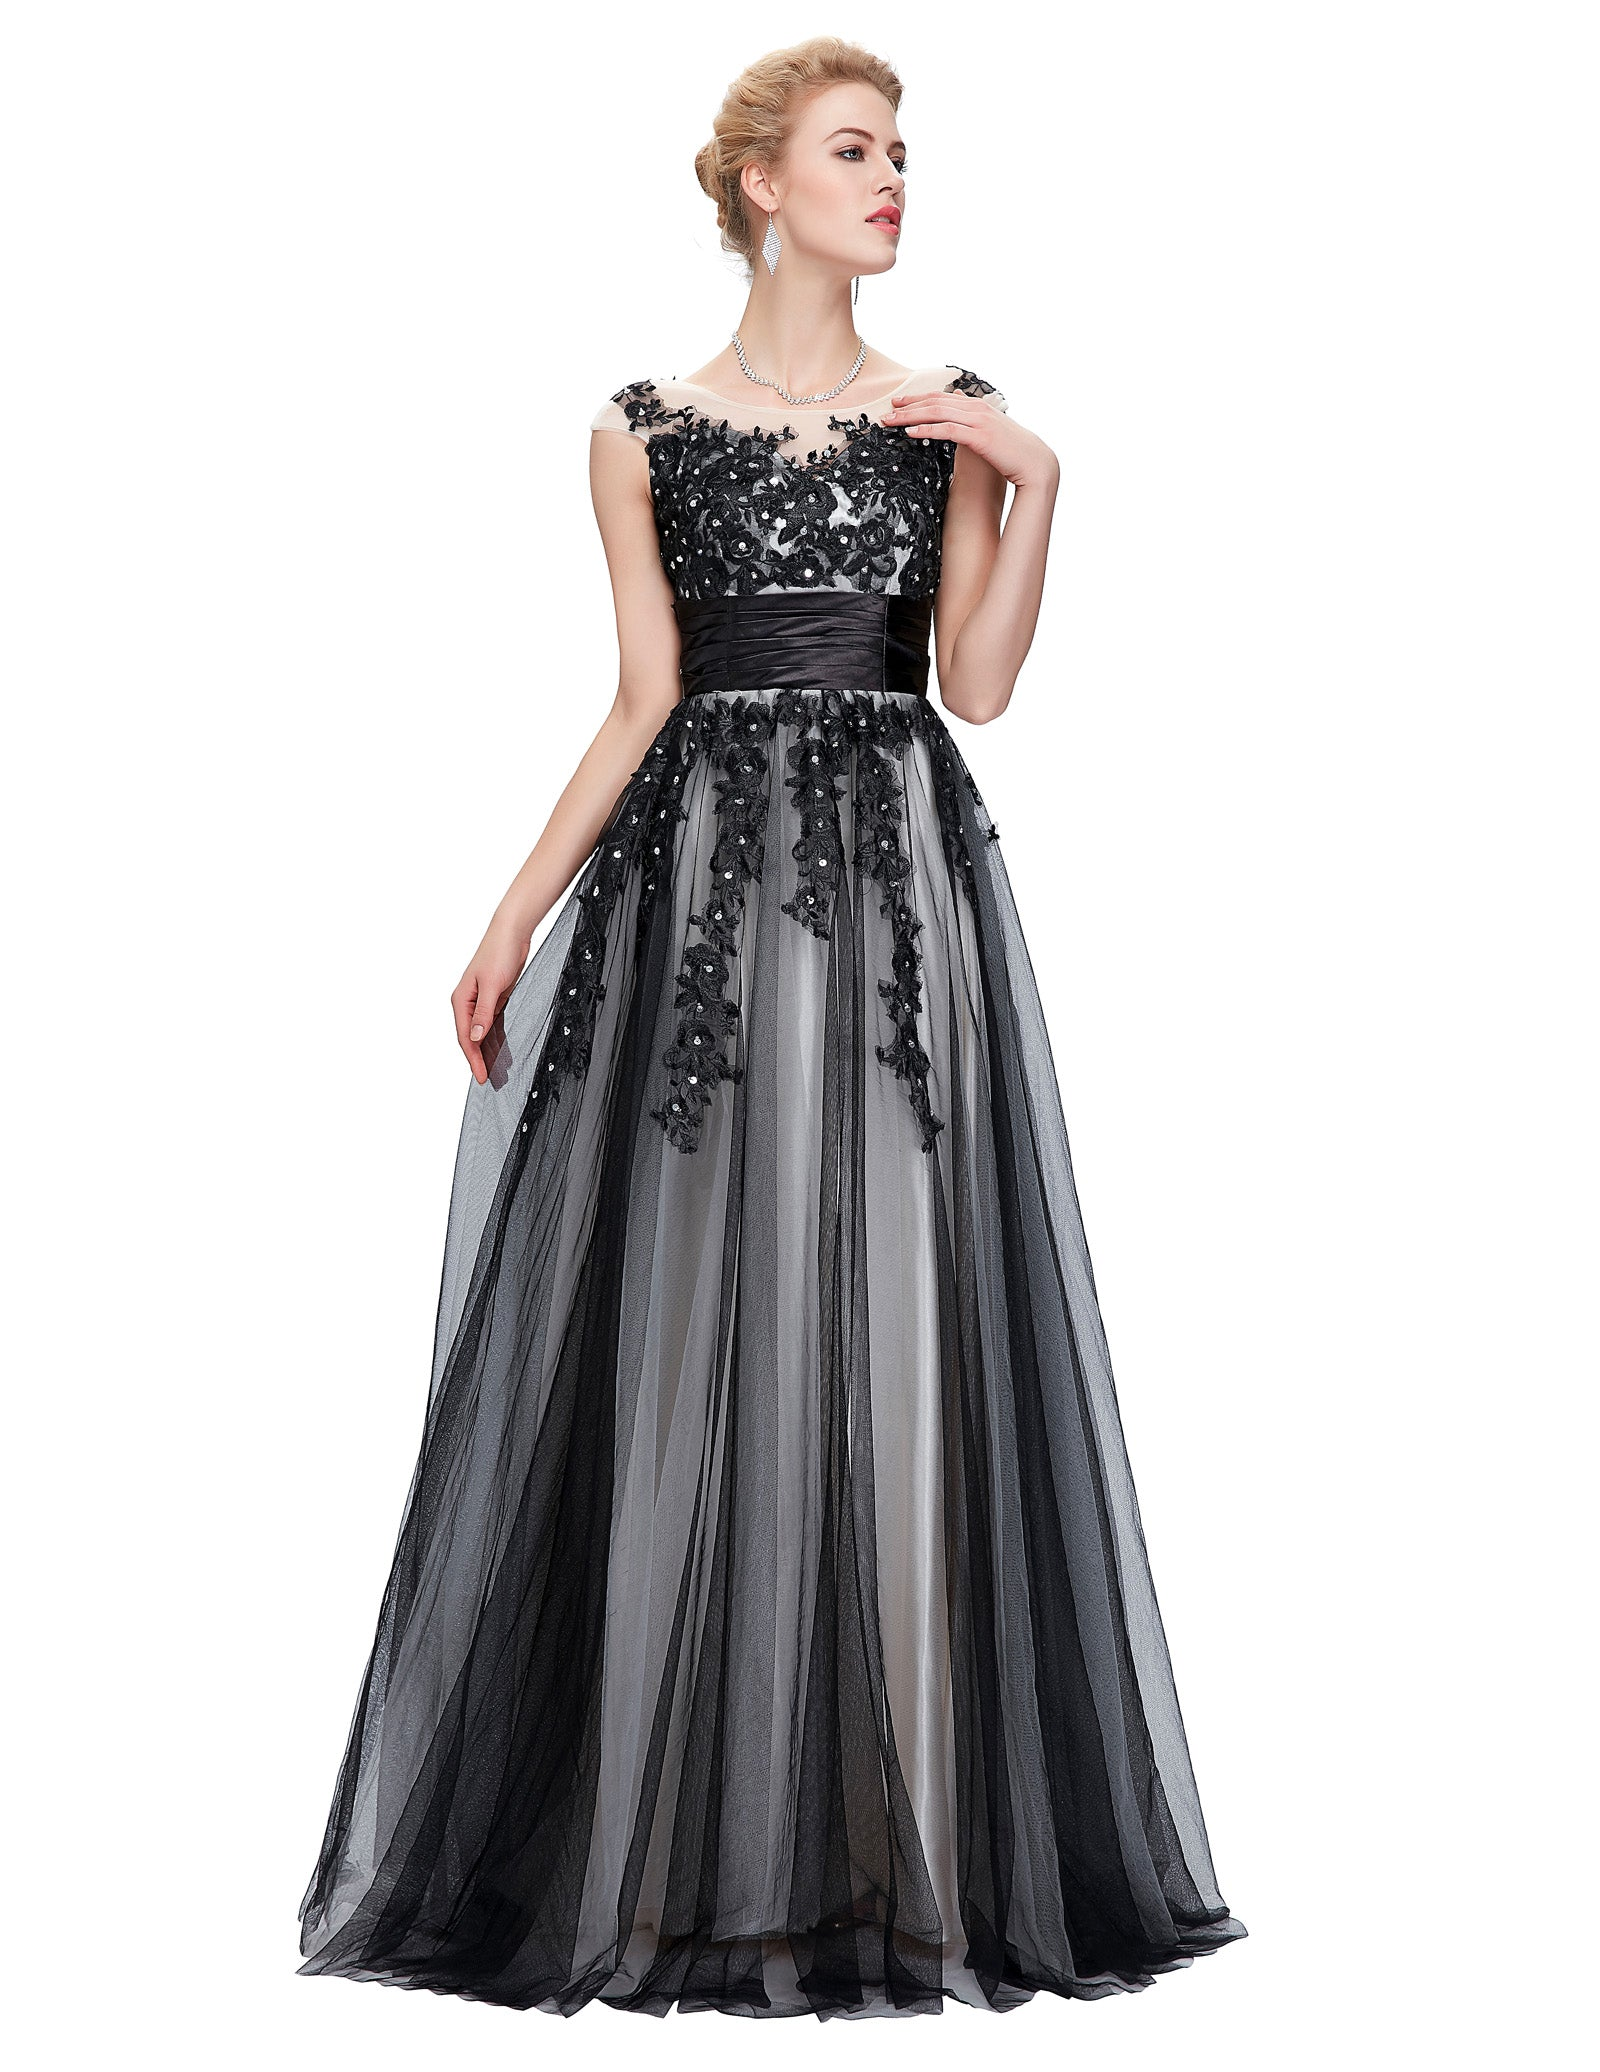 2a9a9084261 GK Sleeveless Soft Tulle Ball Gown Evening Prom Party Dress 8 Size US 2~16